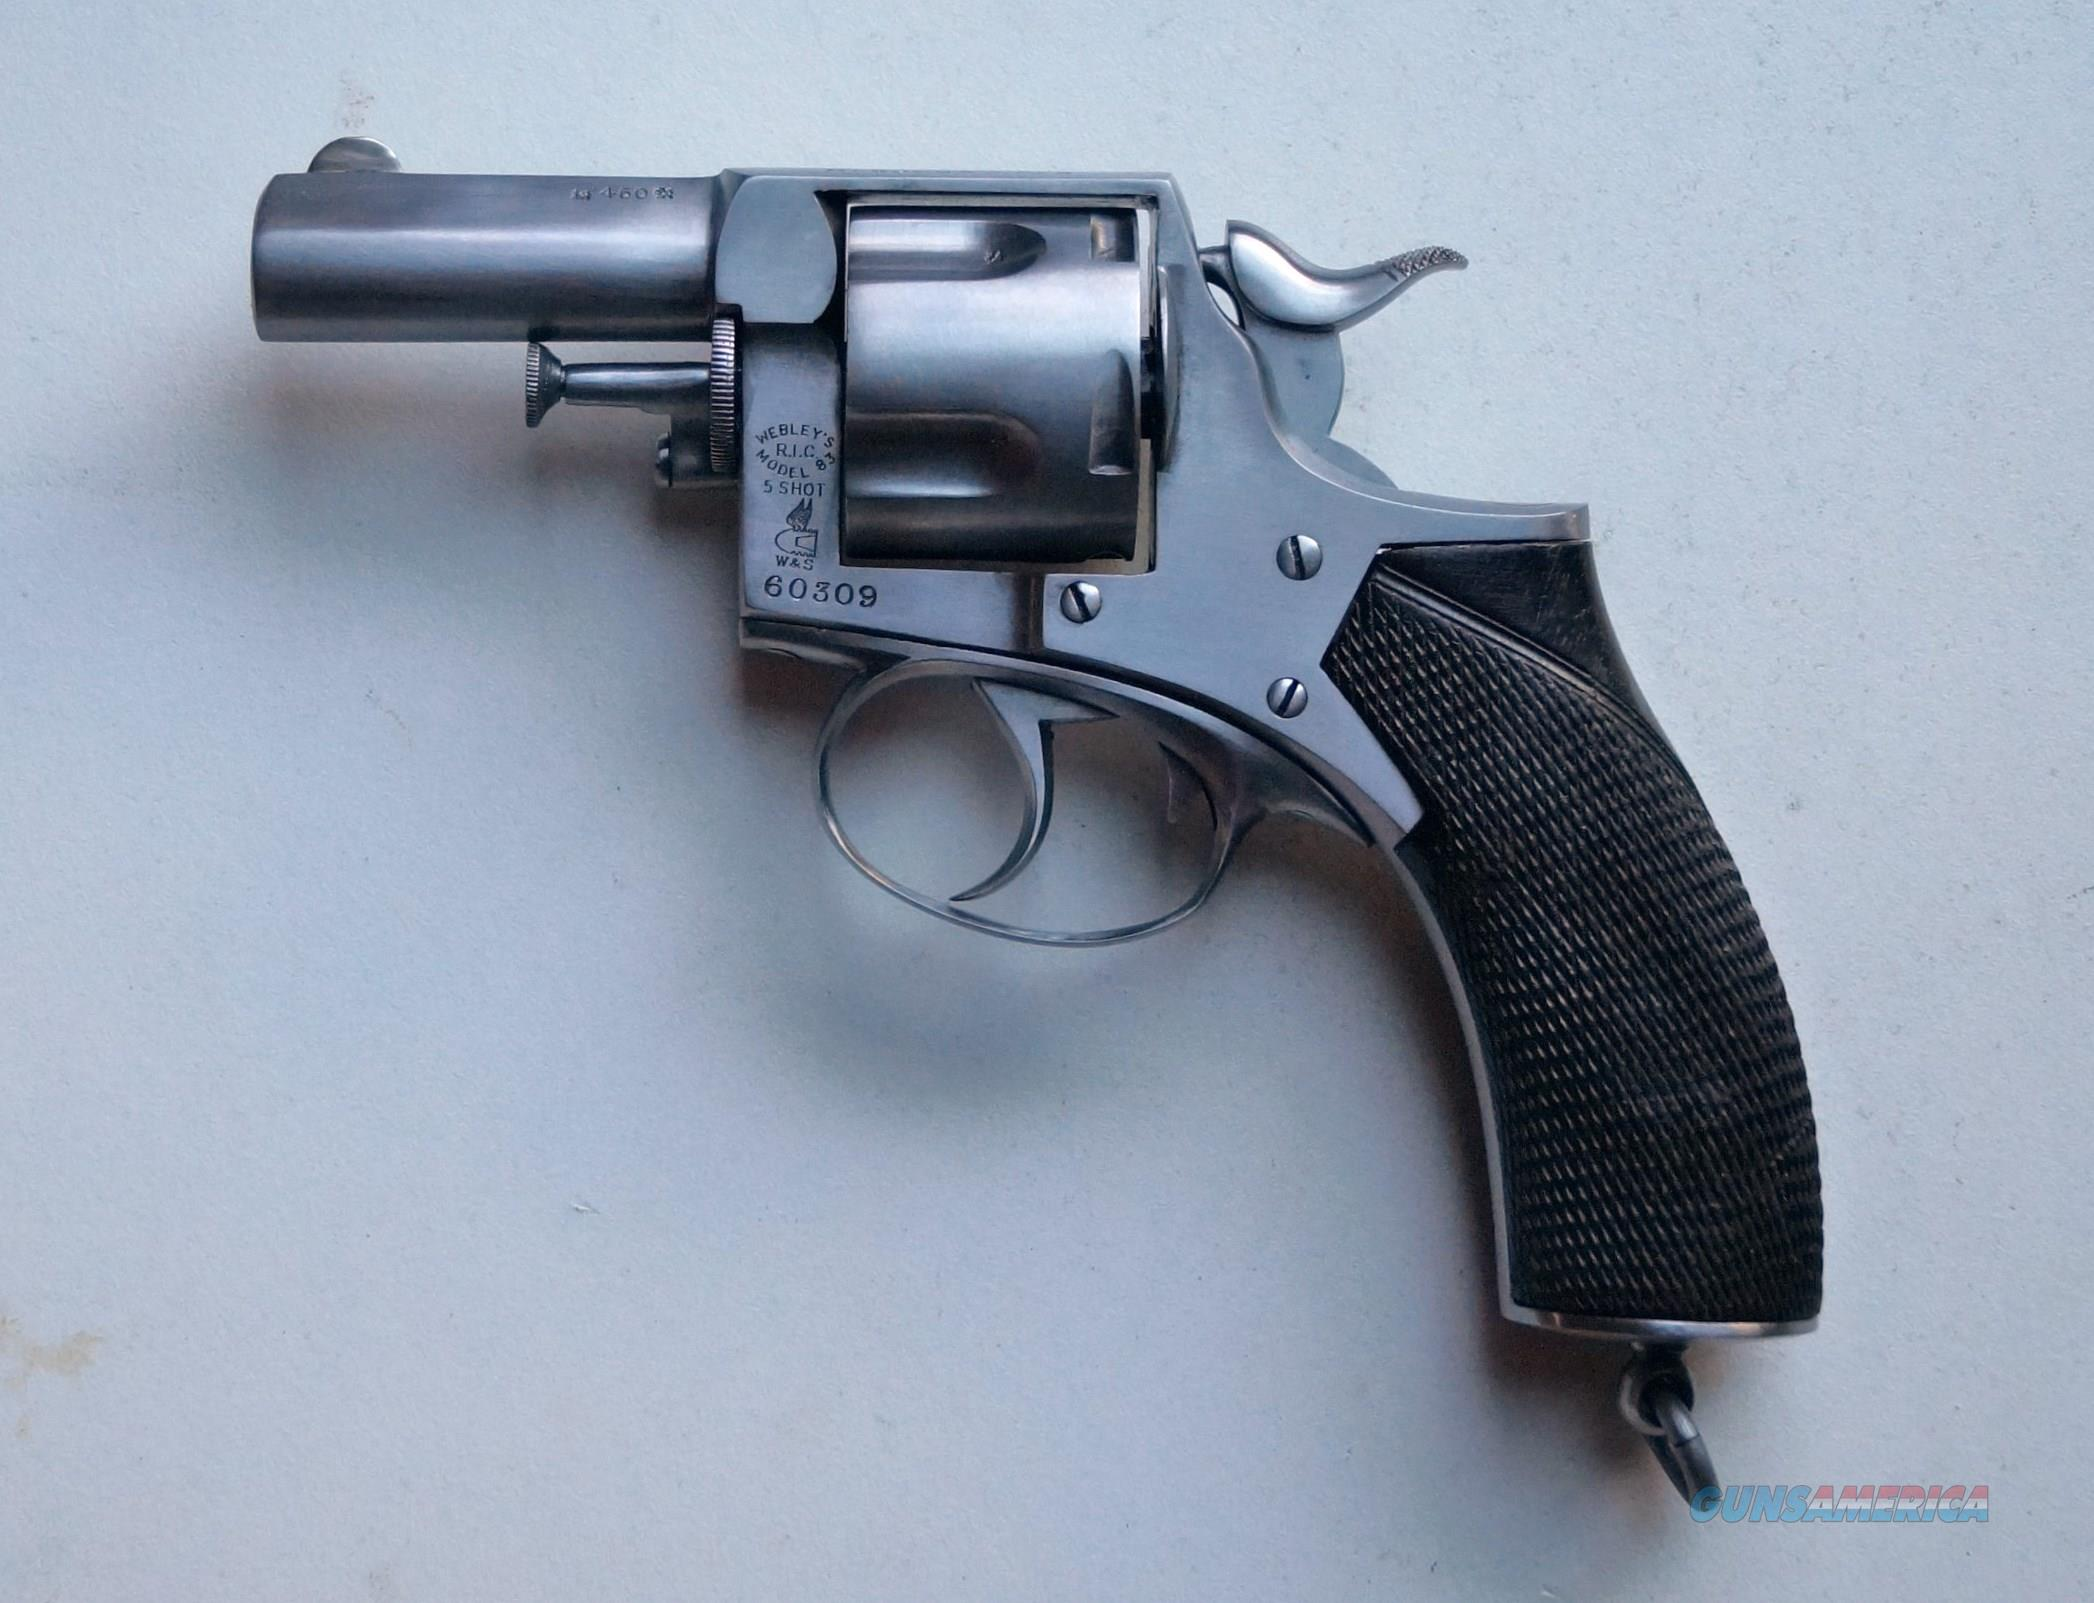 "WEBLEY MODEL 83 R.I.C. 21/4"" BARREL, .450 CAL. - VERY SCARCE  Guns > Pistols > Webley Pistols"